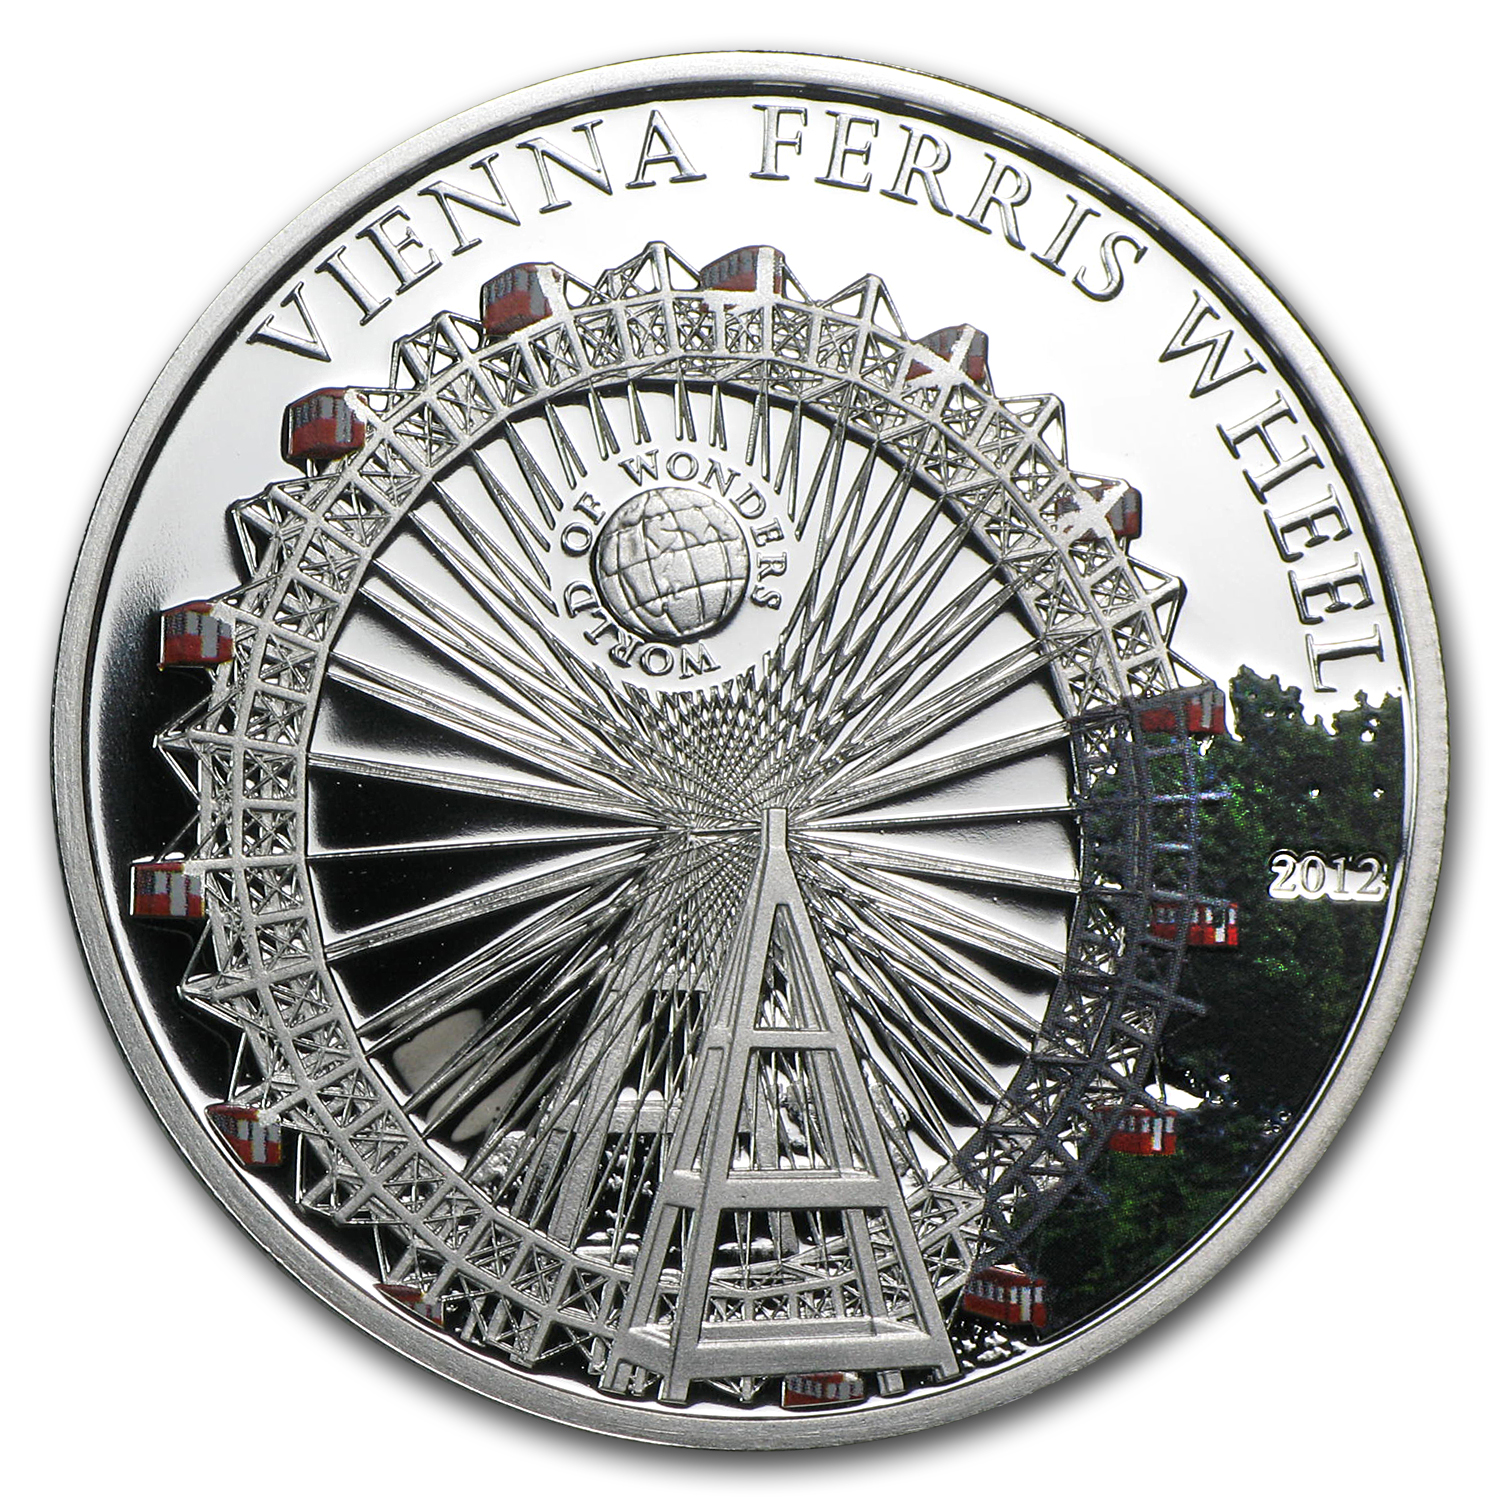 2012 Palau Proof Silver $5 World of Wonders Vienna Ferris Wheel